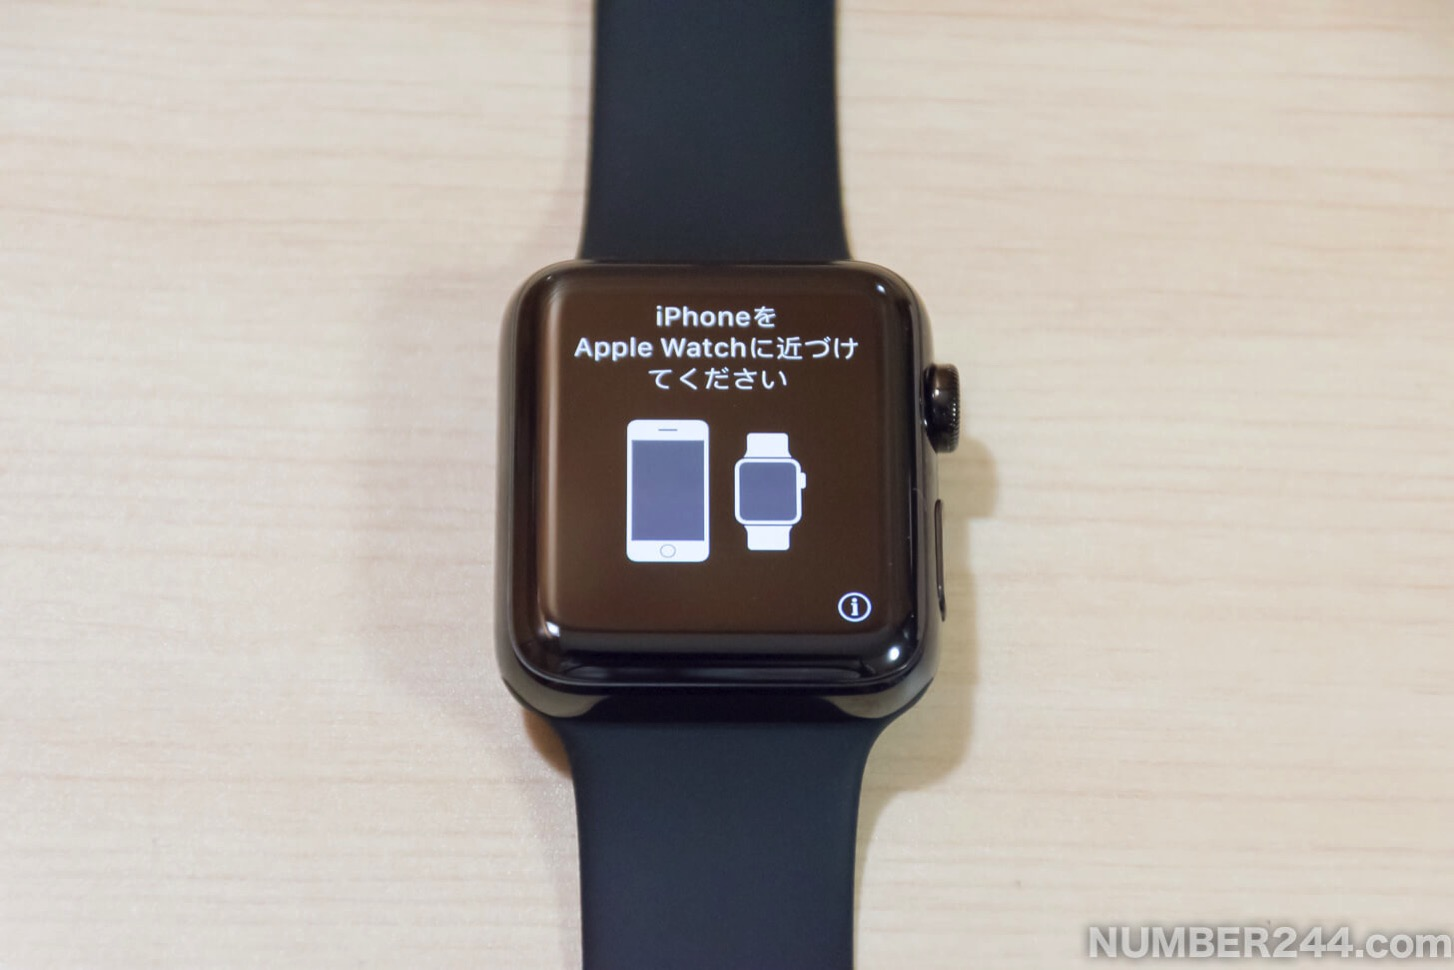 Initial setting of Apple Watch 1